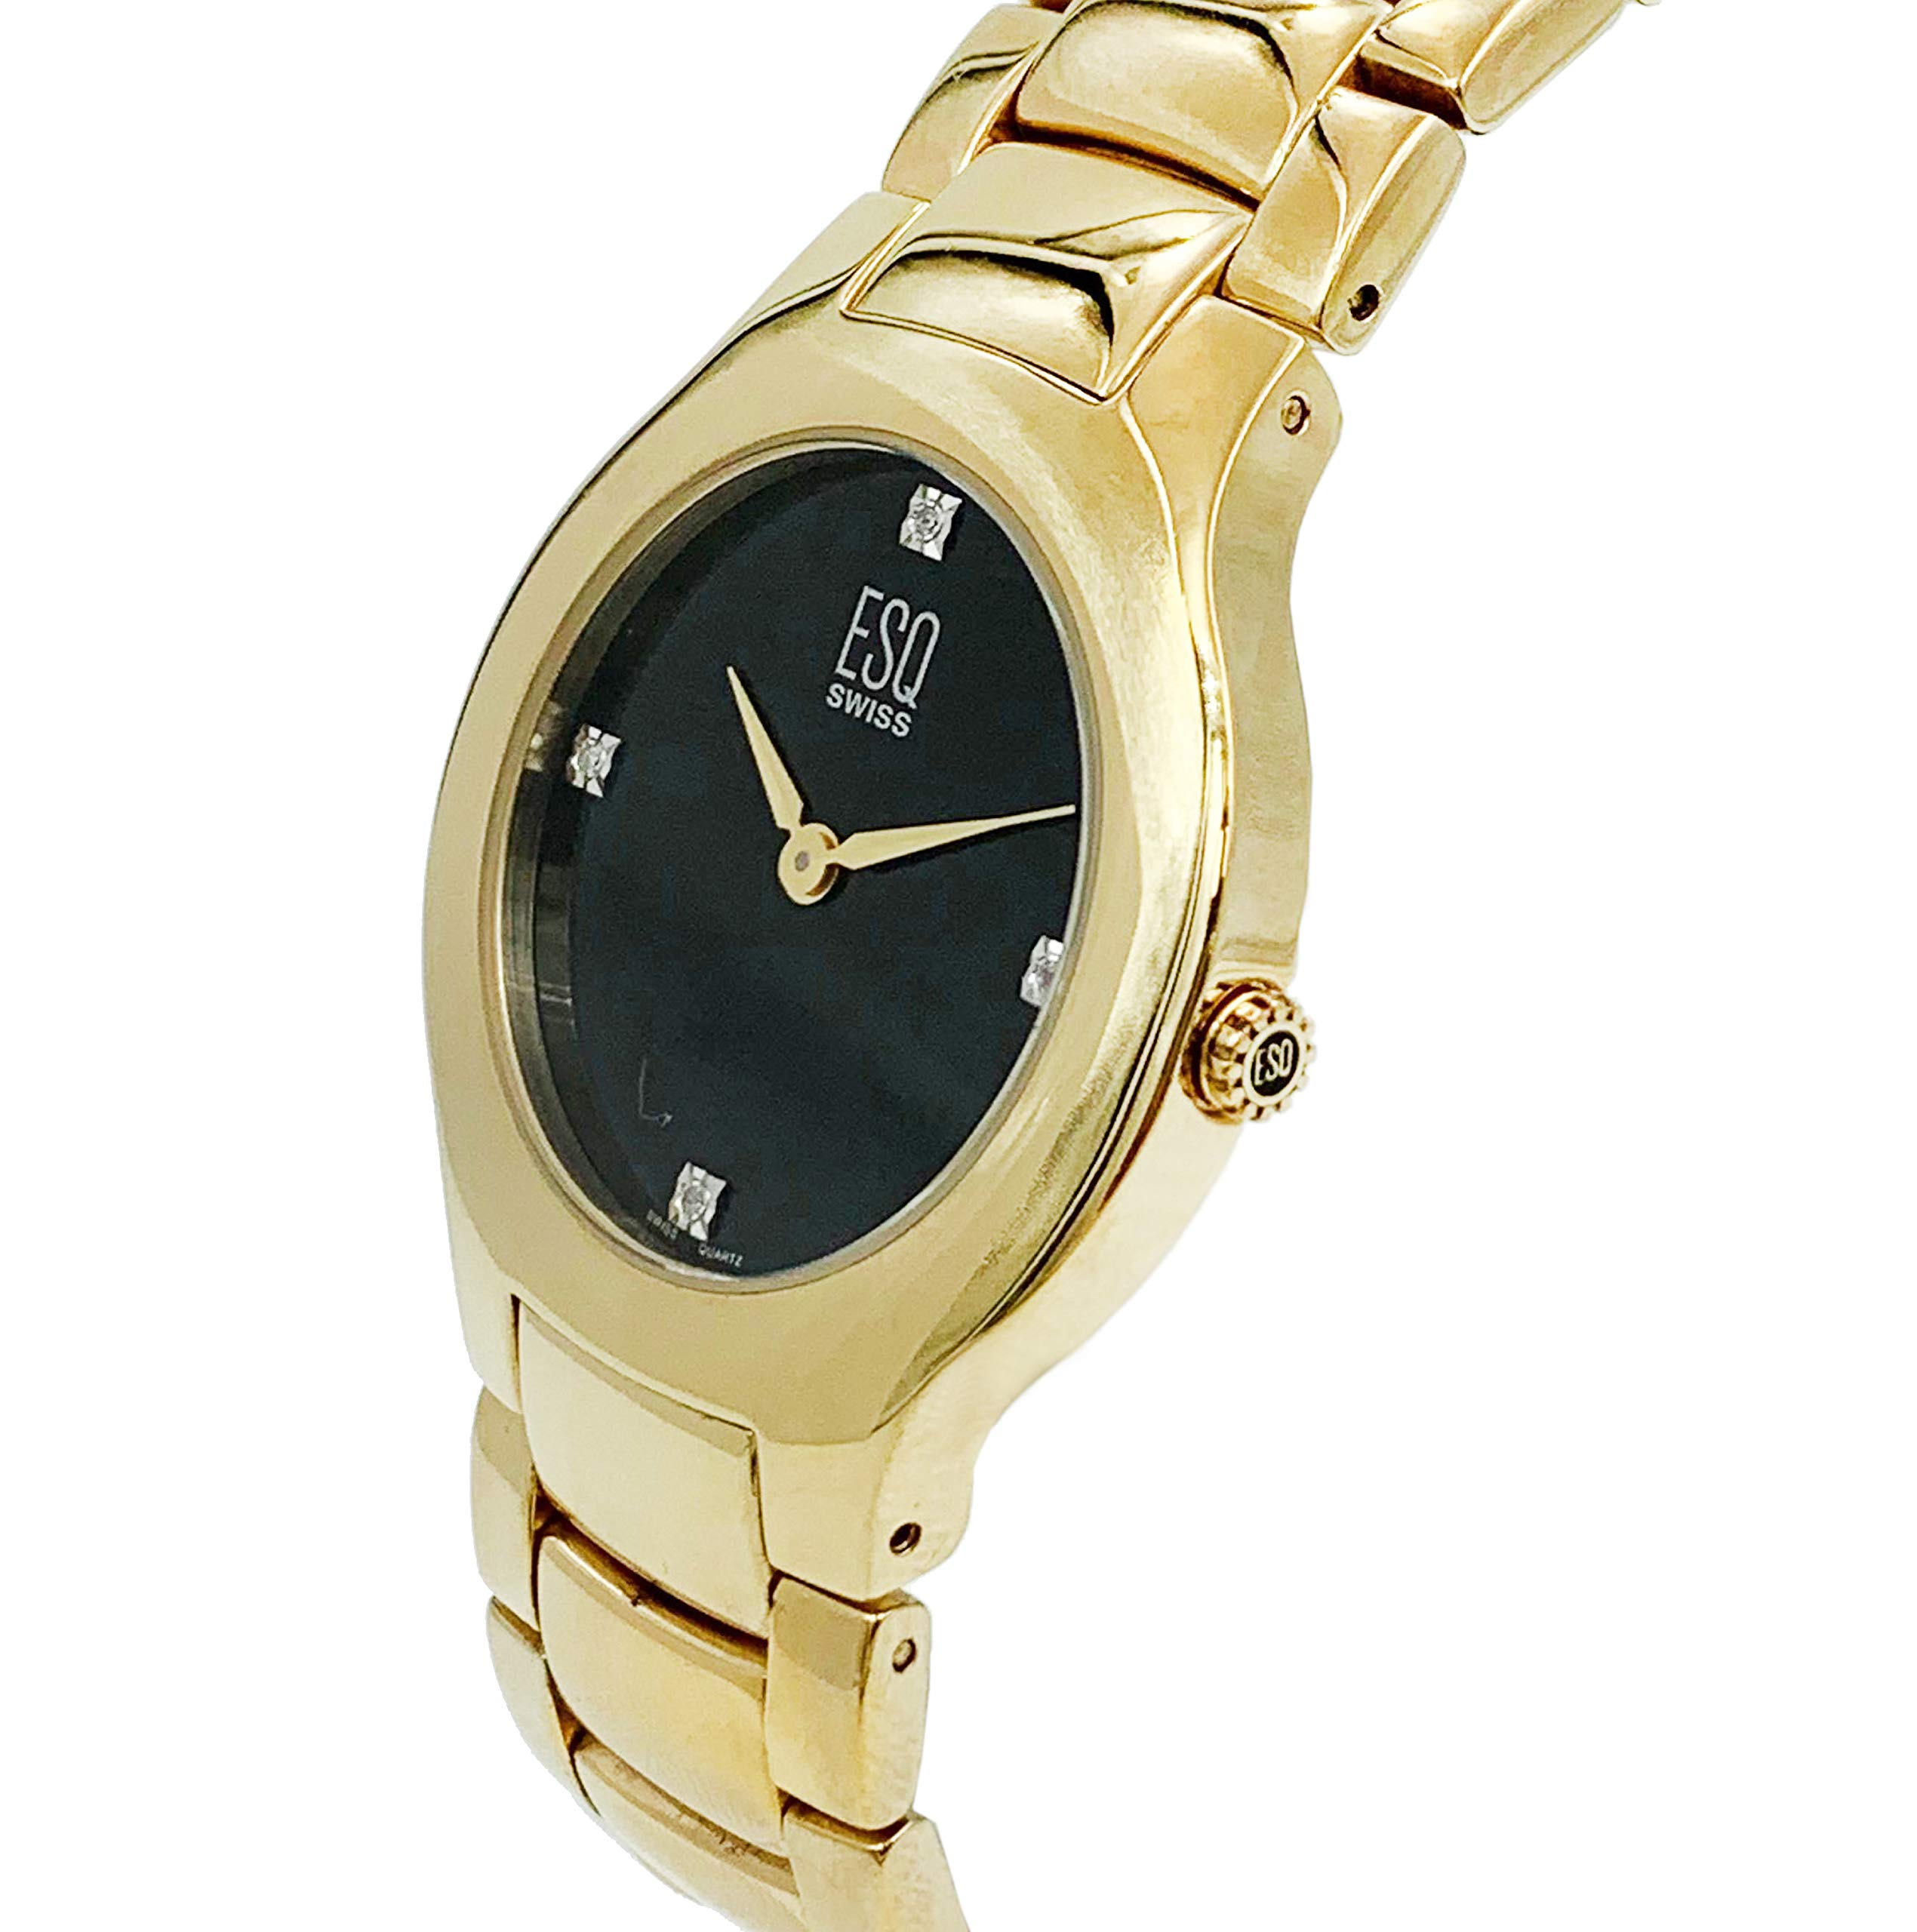 ESQ Verve Quartz Male Watch 07301190 (Certified Pre-Owned) by ESQ (Image #3)